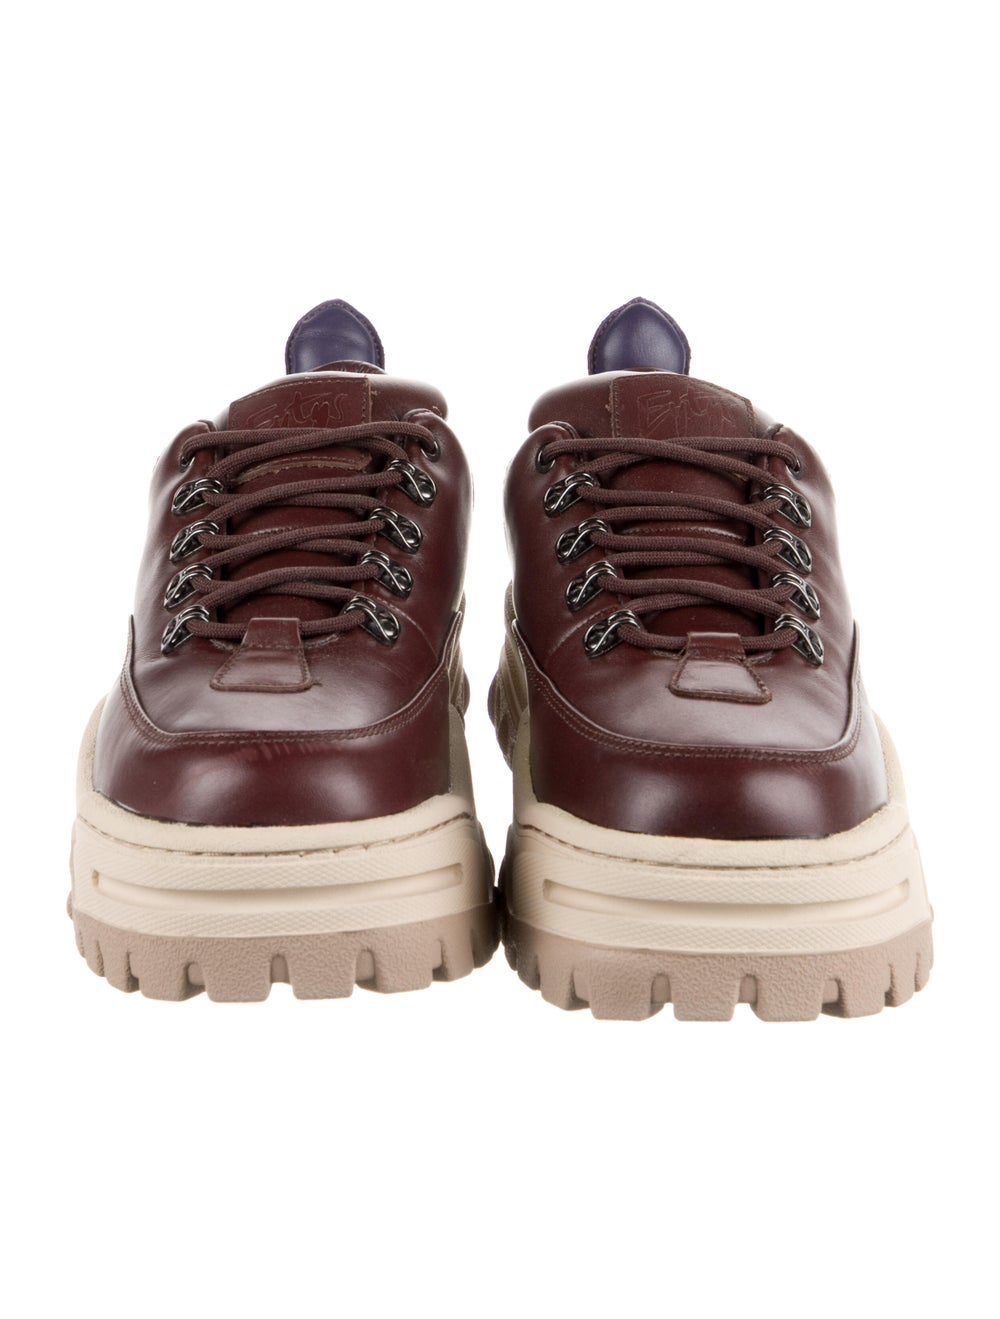 Eytys Leather Chunky Sneakers - image 3